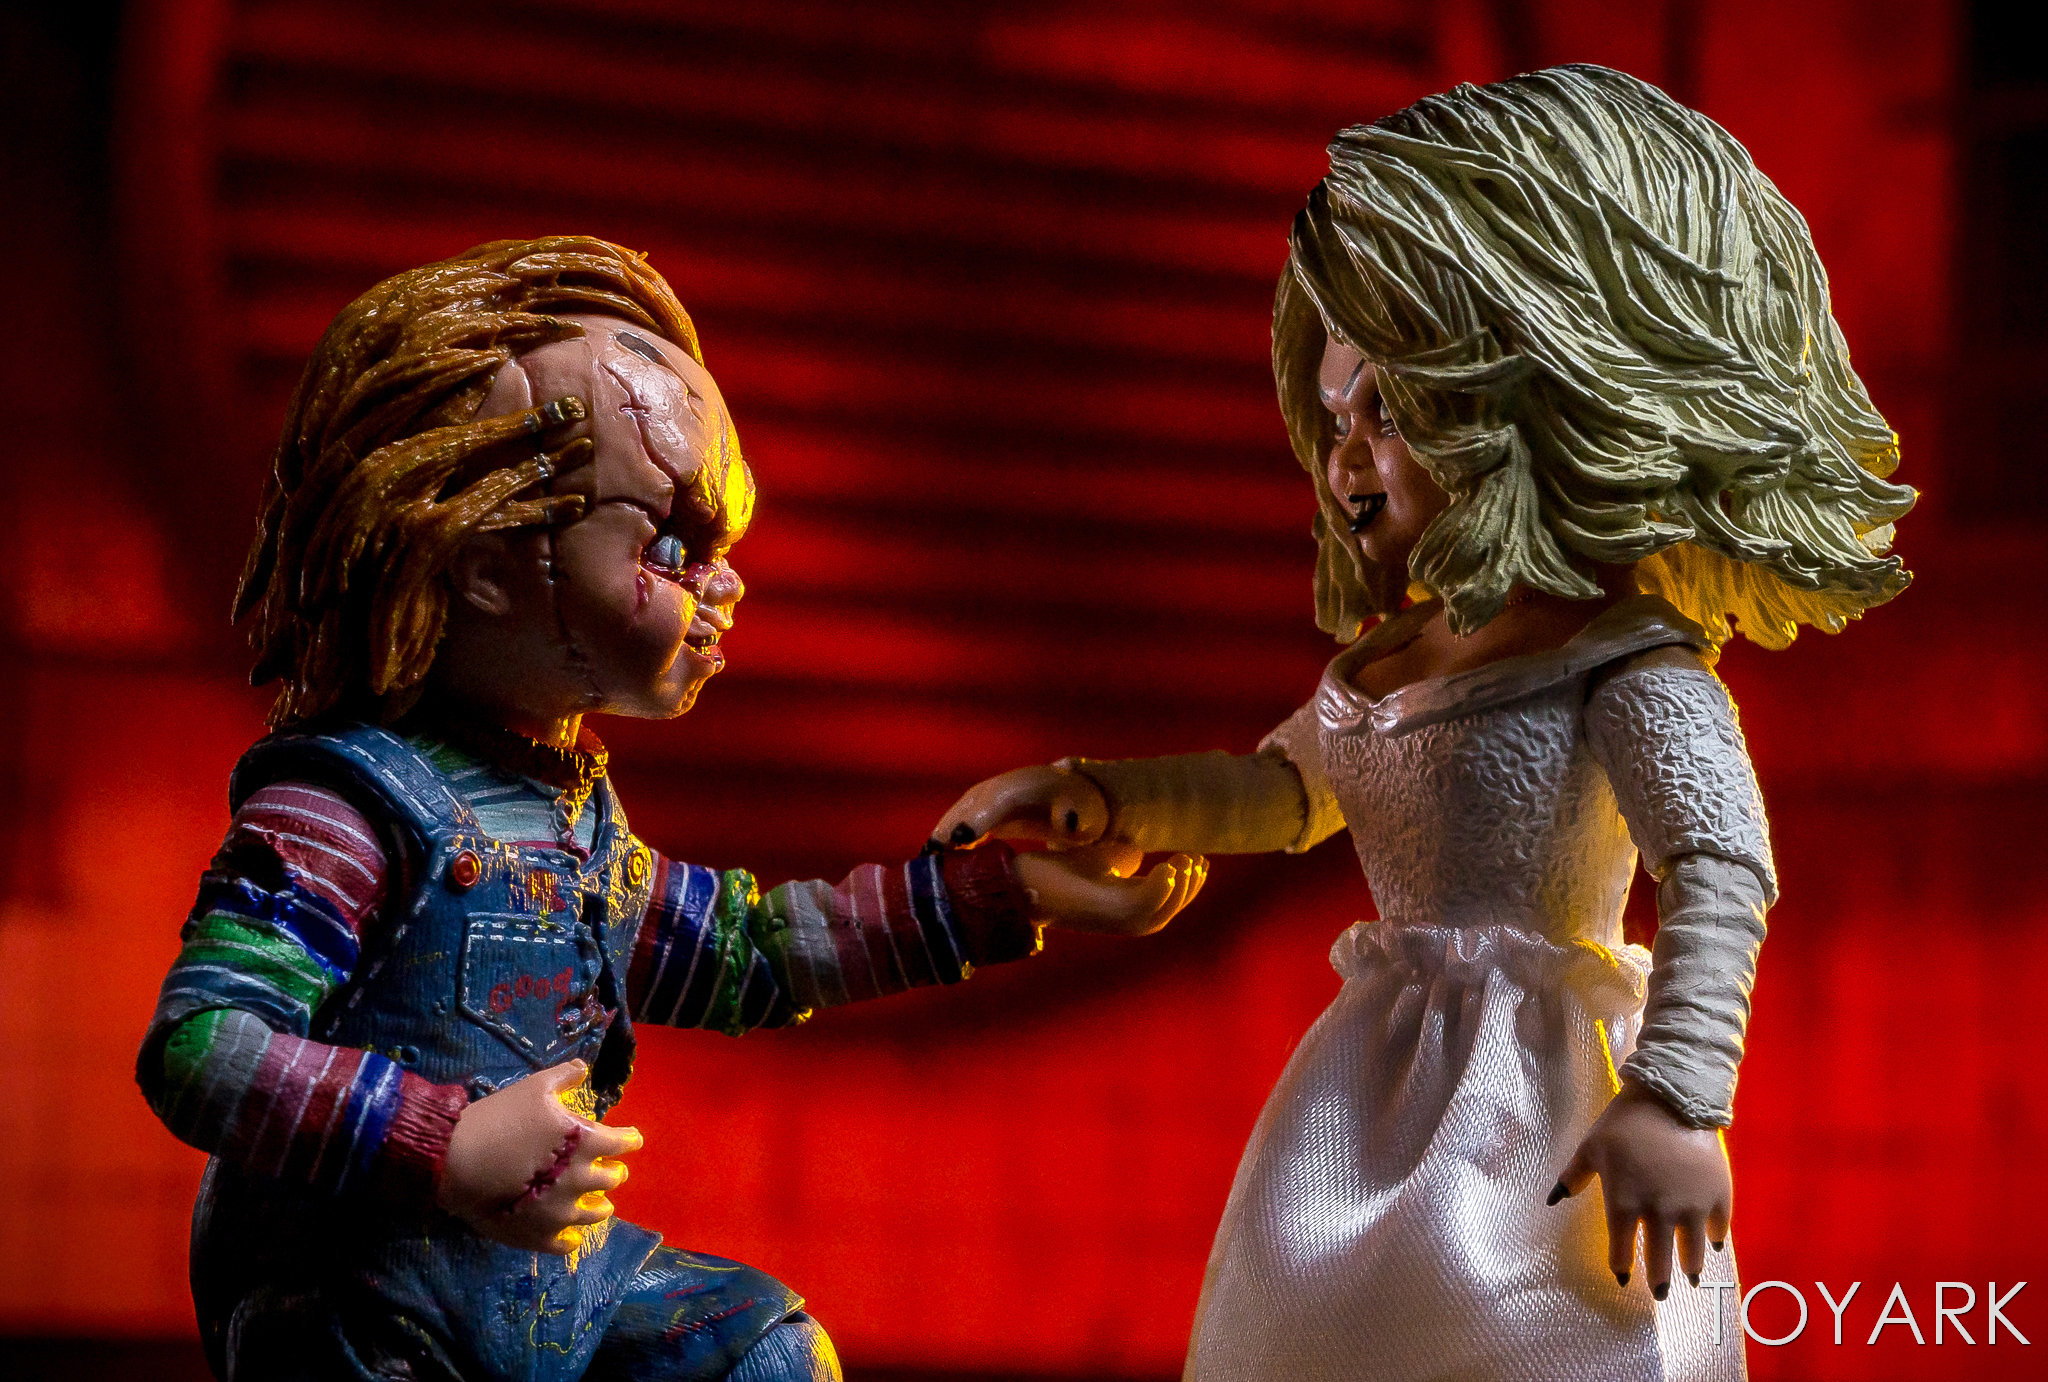 https://news.toyark.com/wp-content/uploads/sites/4/2019/01/Bride-of-Chucky-NECA-Set-027.jpg